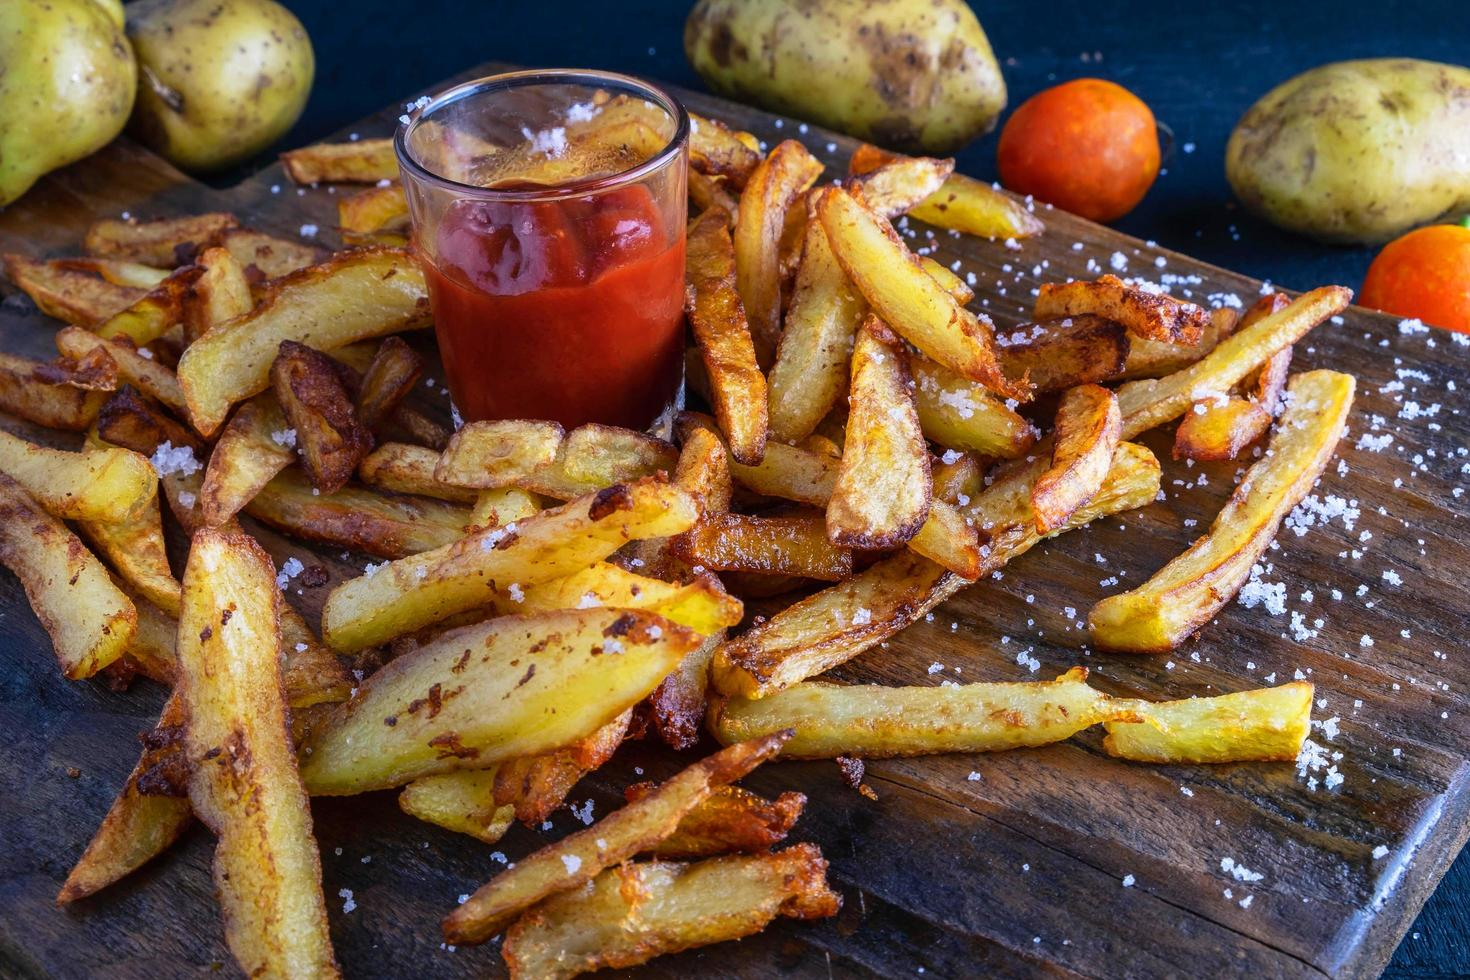 Homemade baked potato fries with ketchup photo